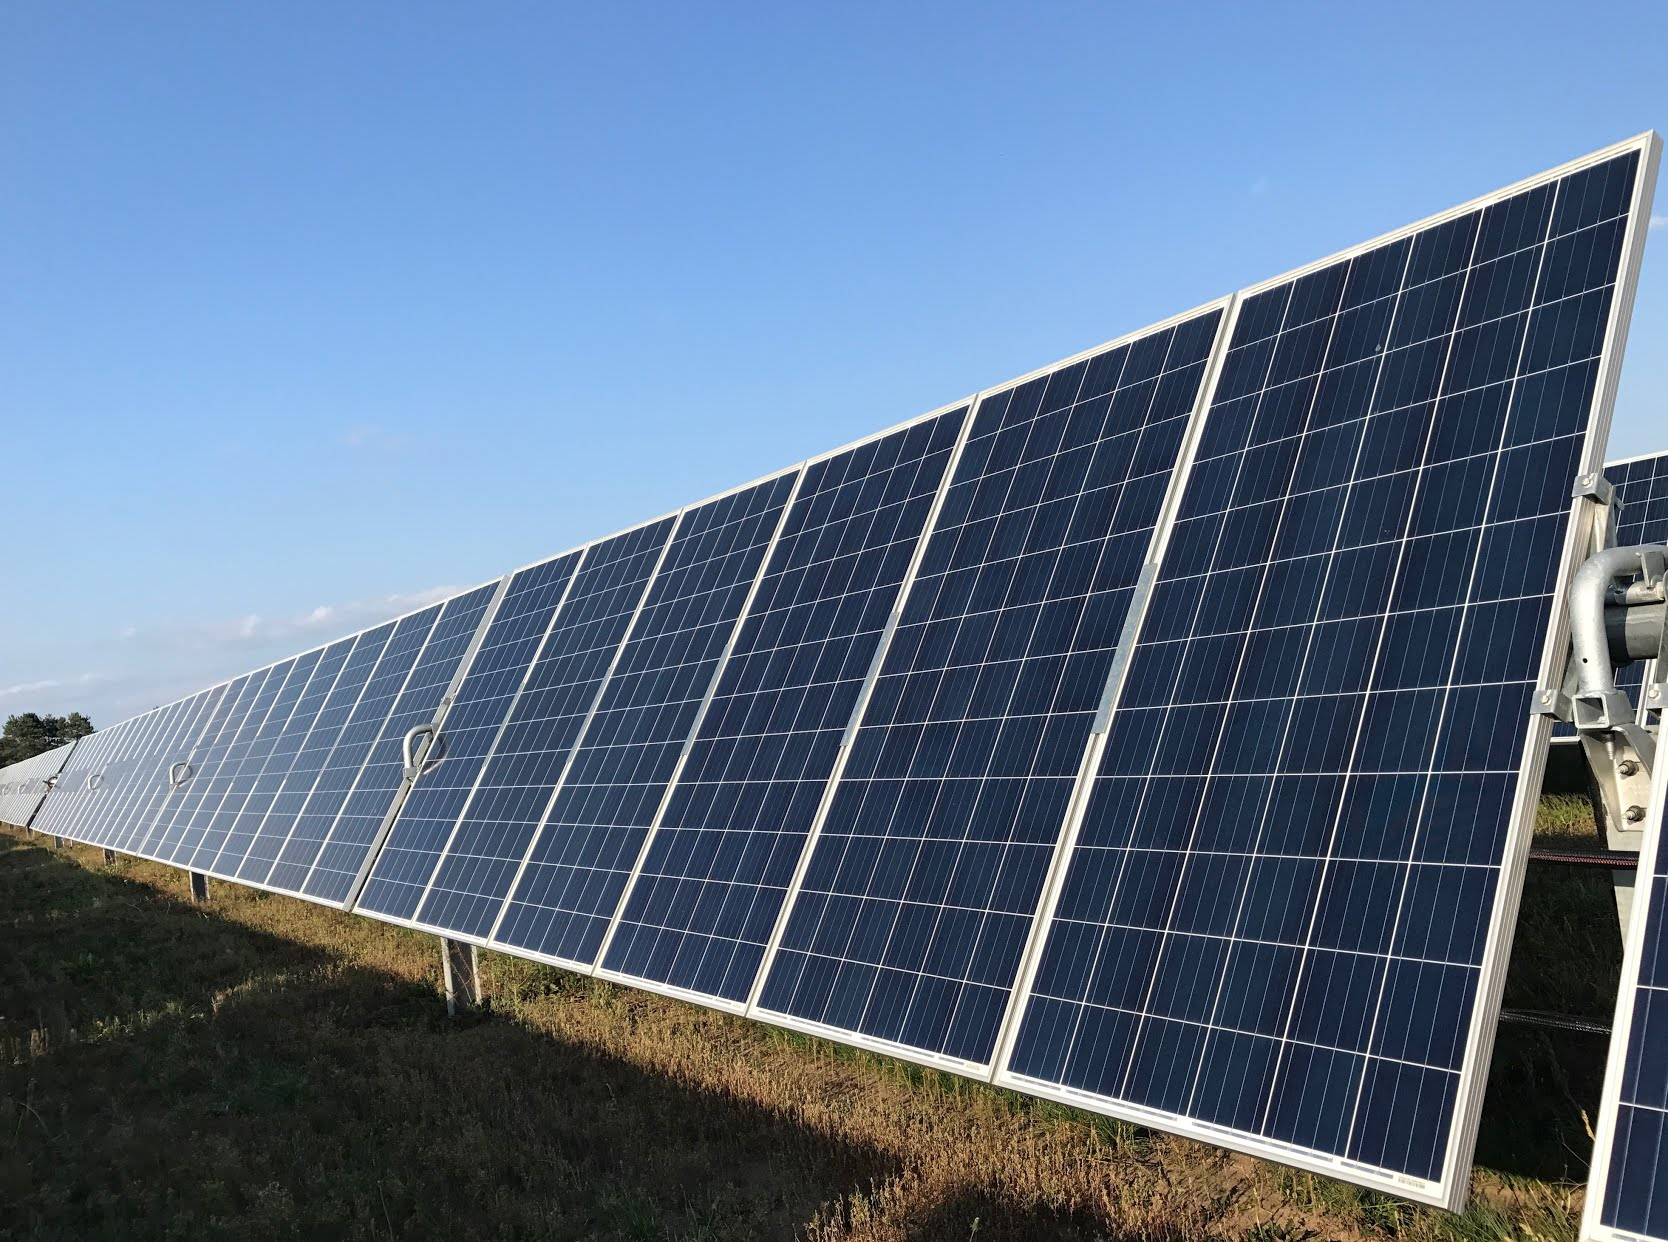 A New Solar Project Breaks Ground InMichigan